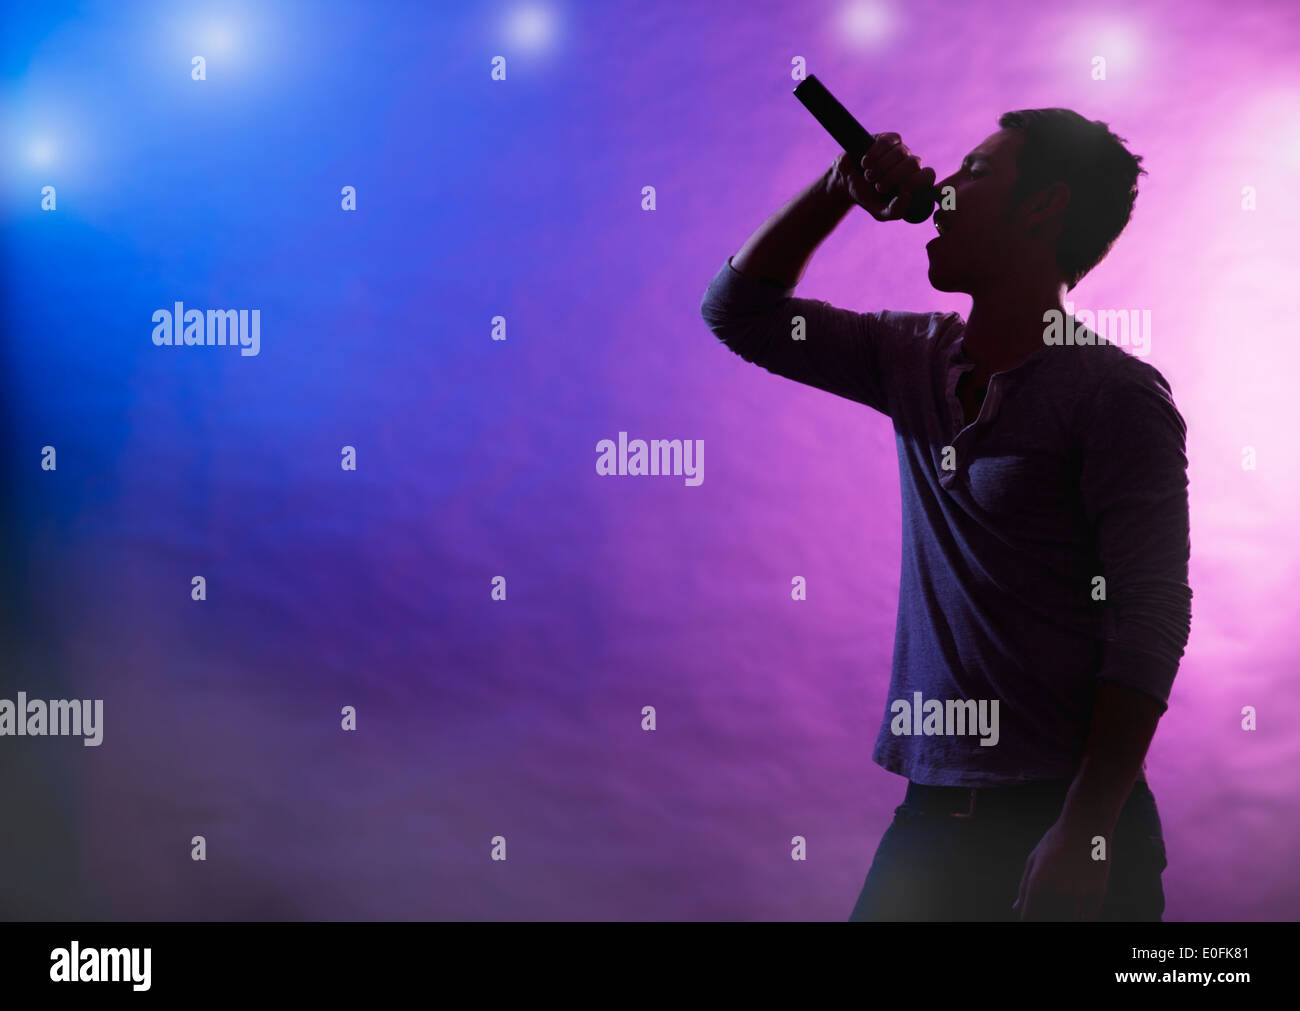 Silhouette of male singer on stage Stock Photo, Royalty ...